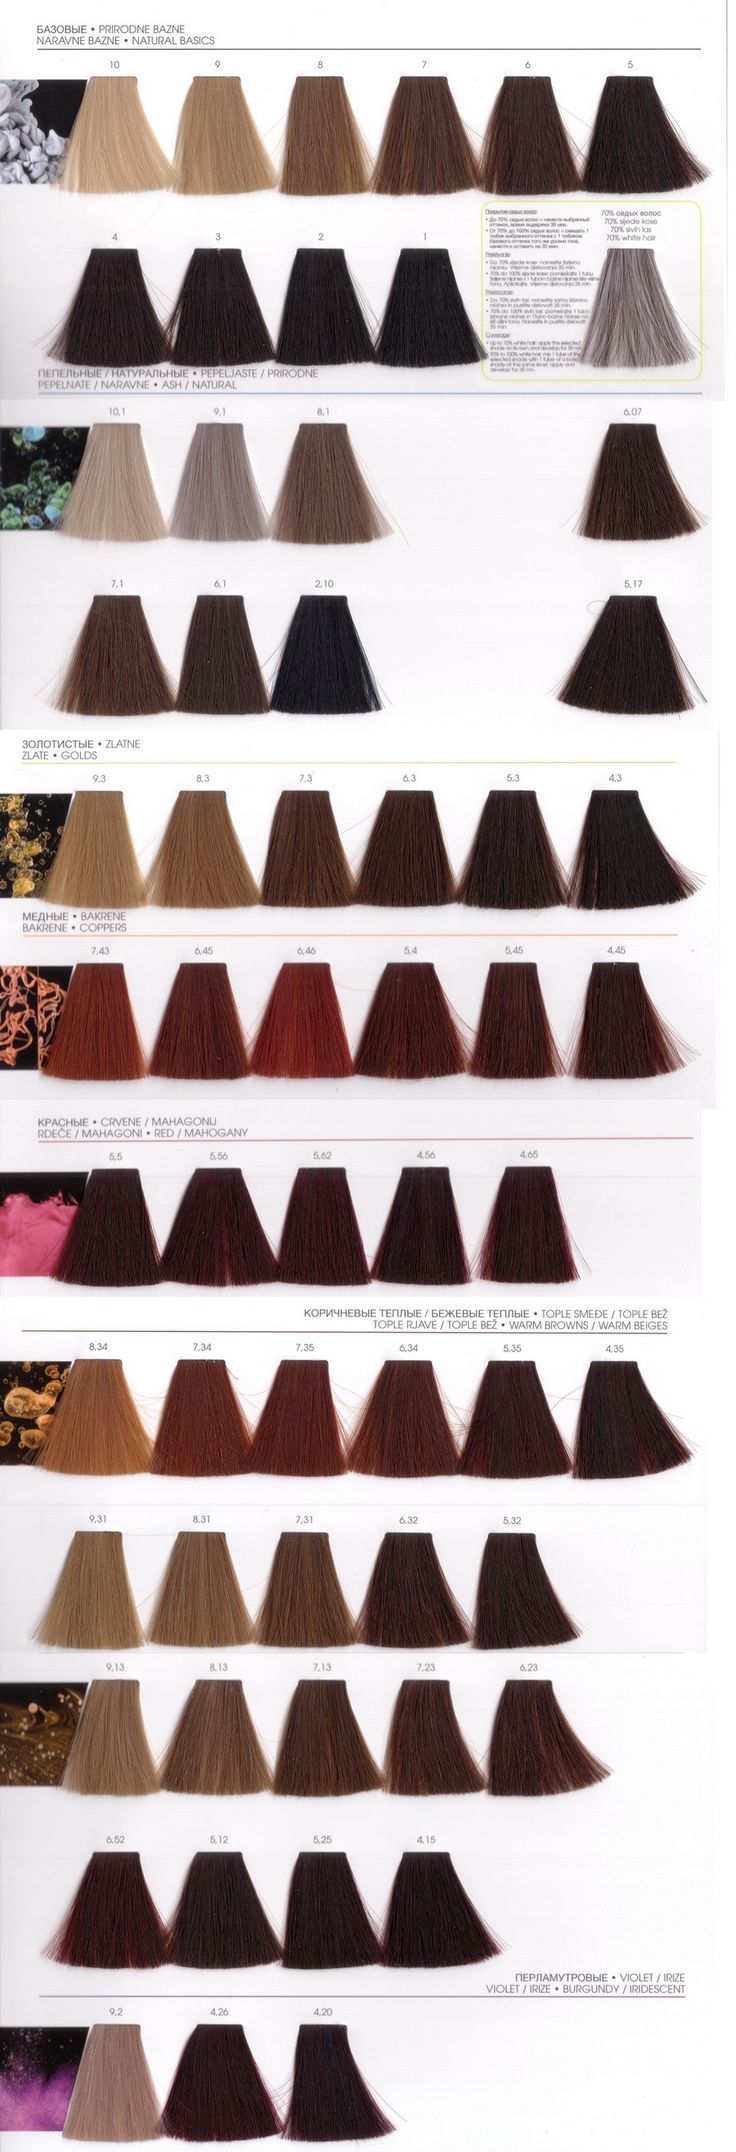 Professional hair color chart choice image free any chart examples professional hair color chart image collections free any chart professional hair color chart image collections free nvjuhfo Image collections